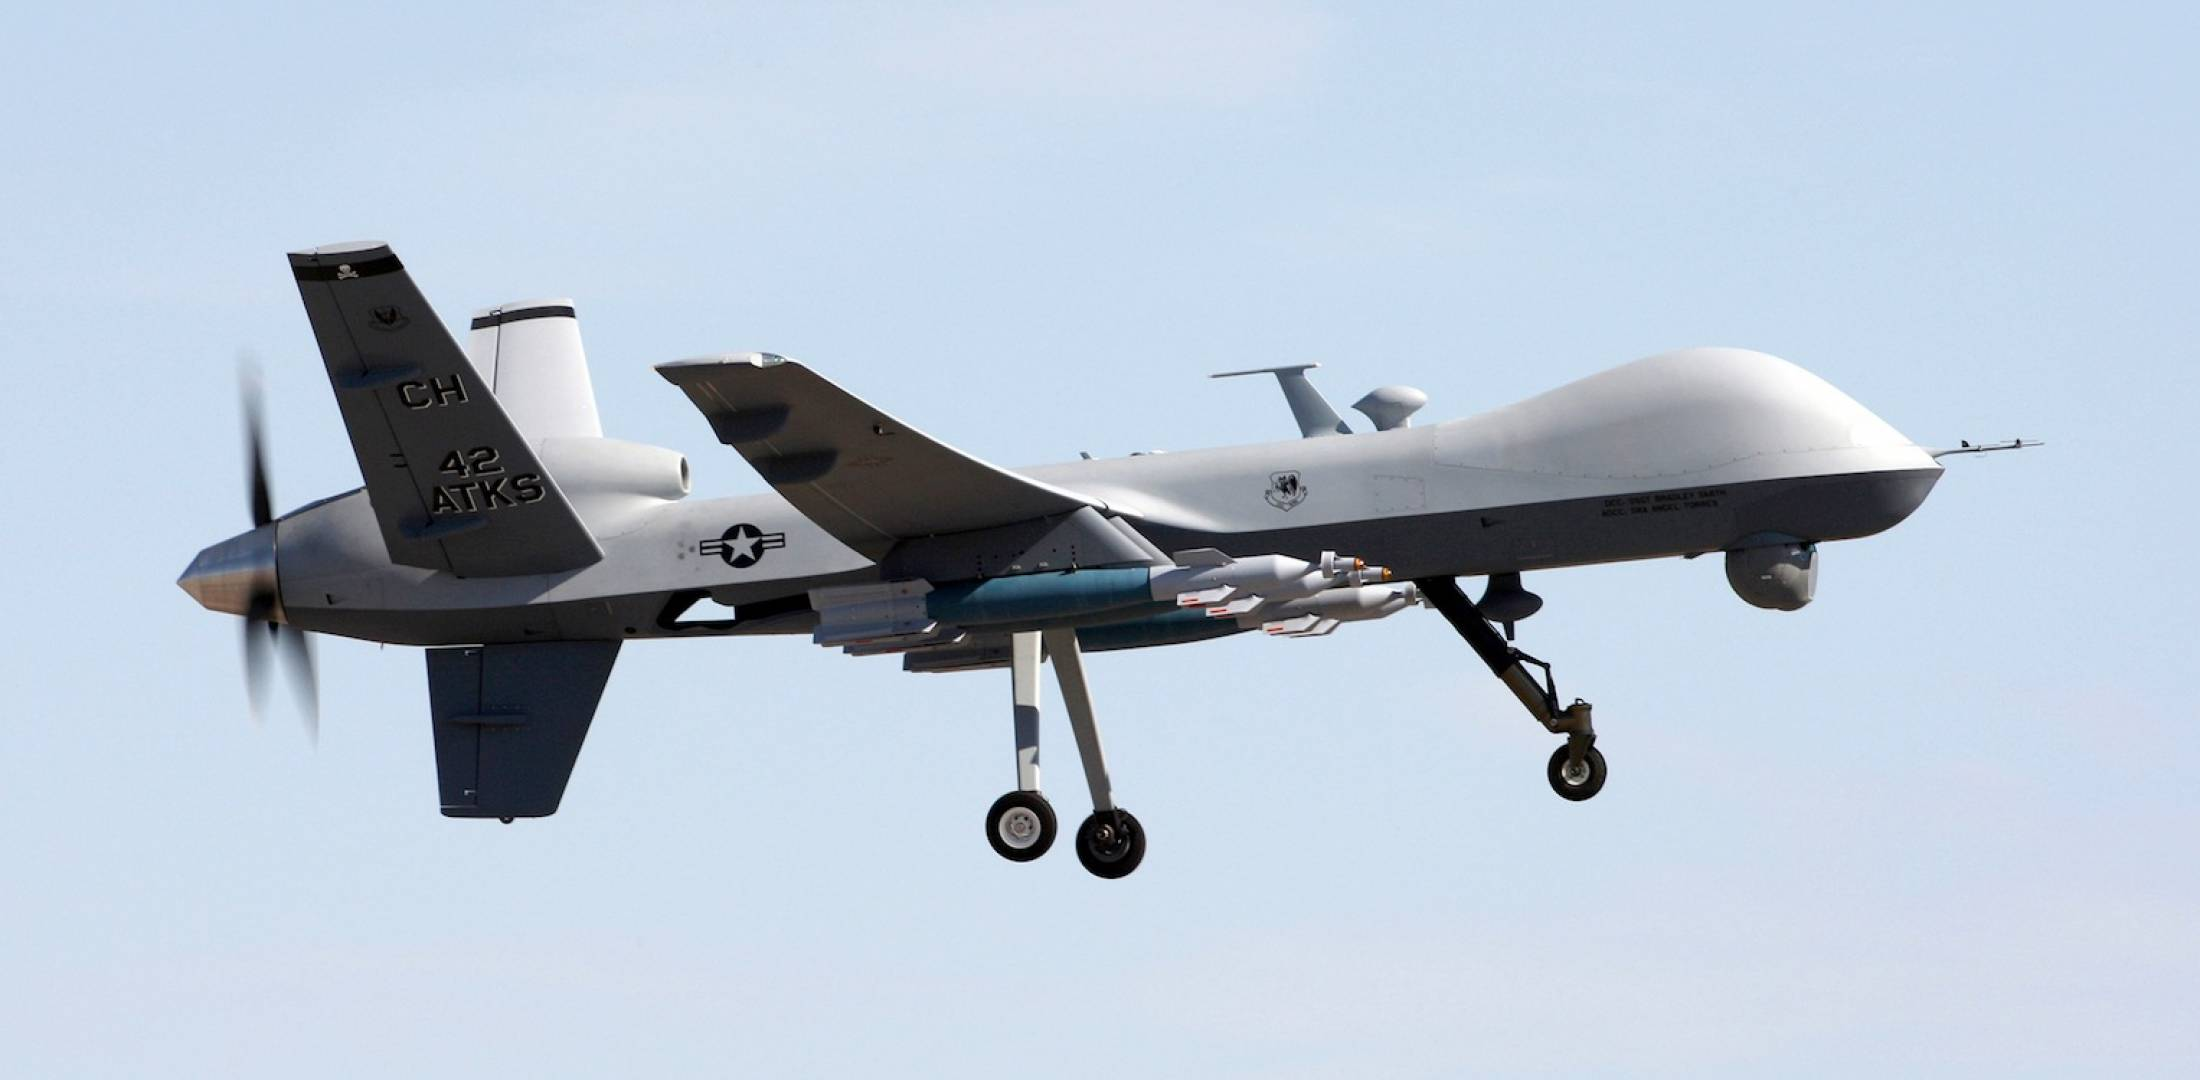 U.S. Air Force MQ-9 Reaper